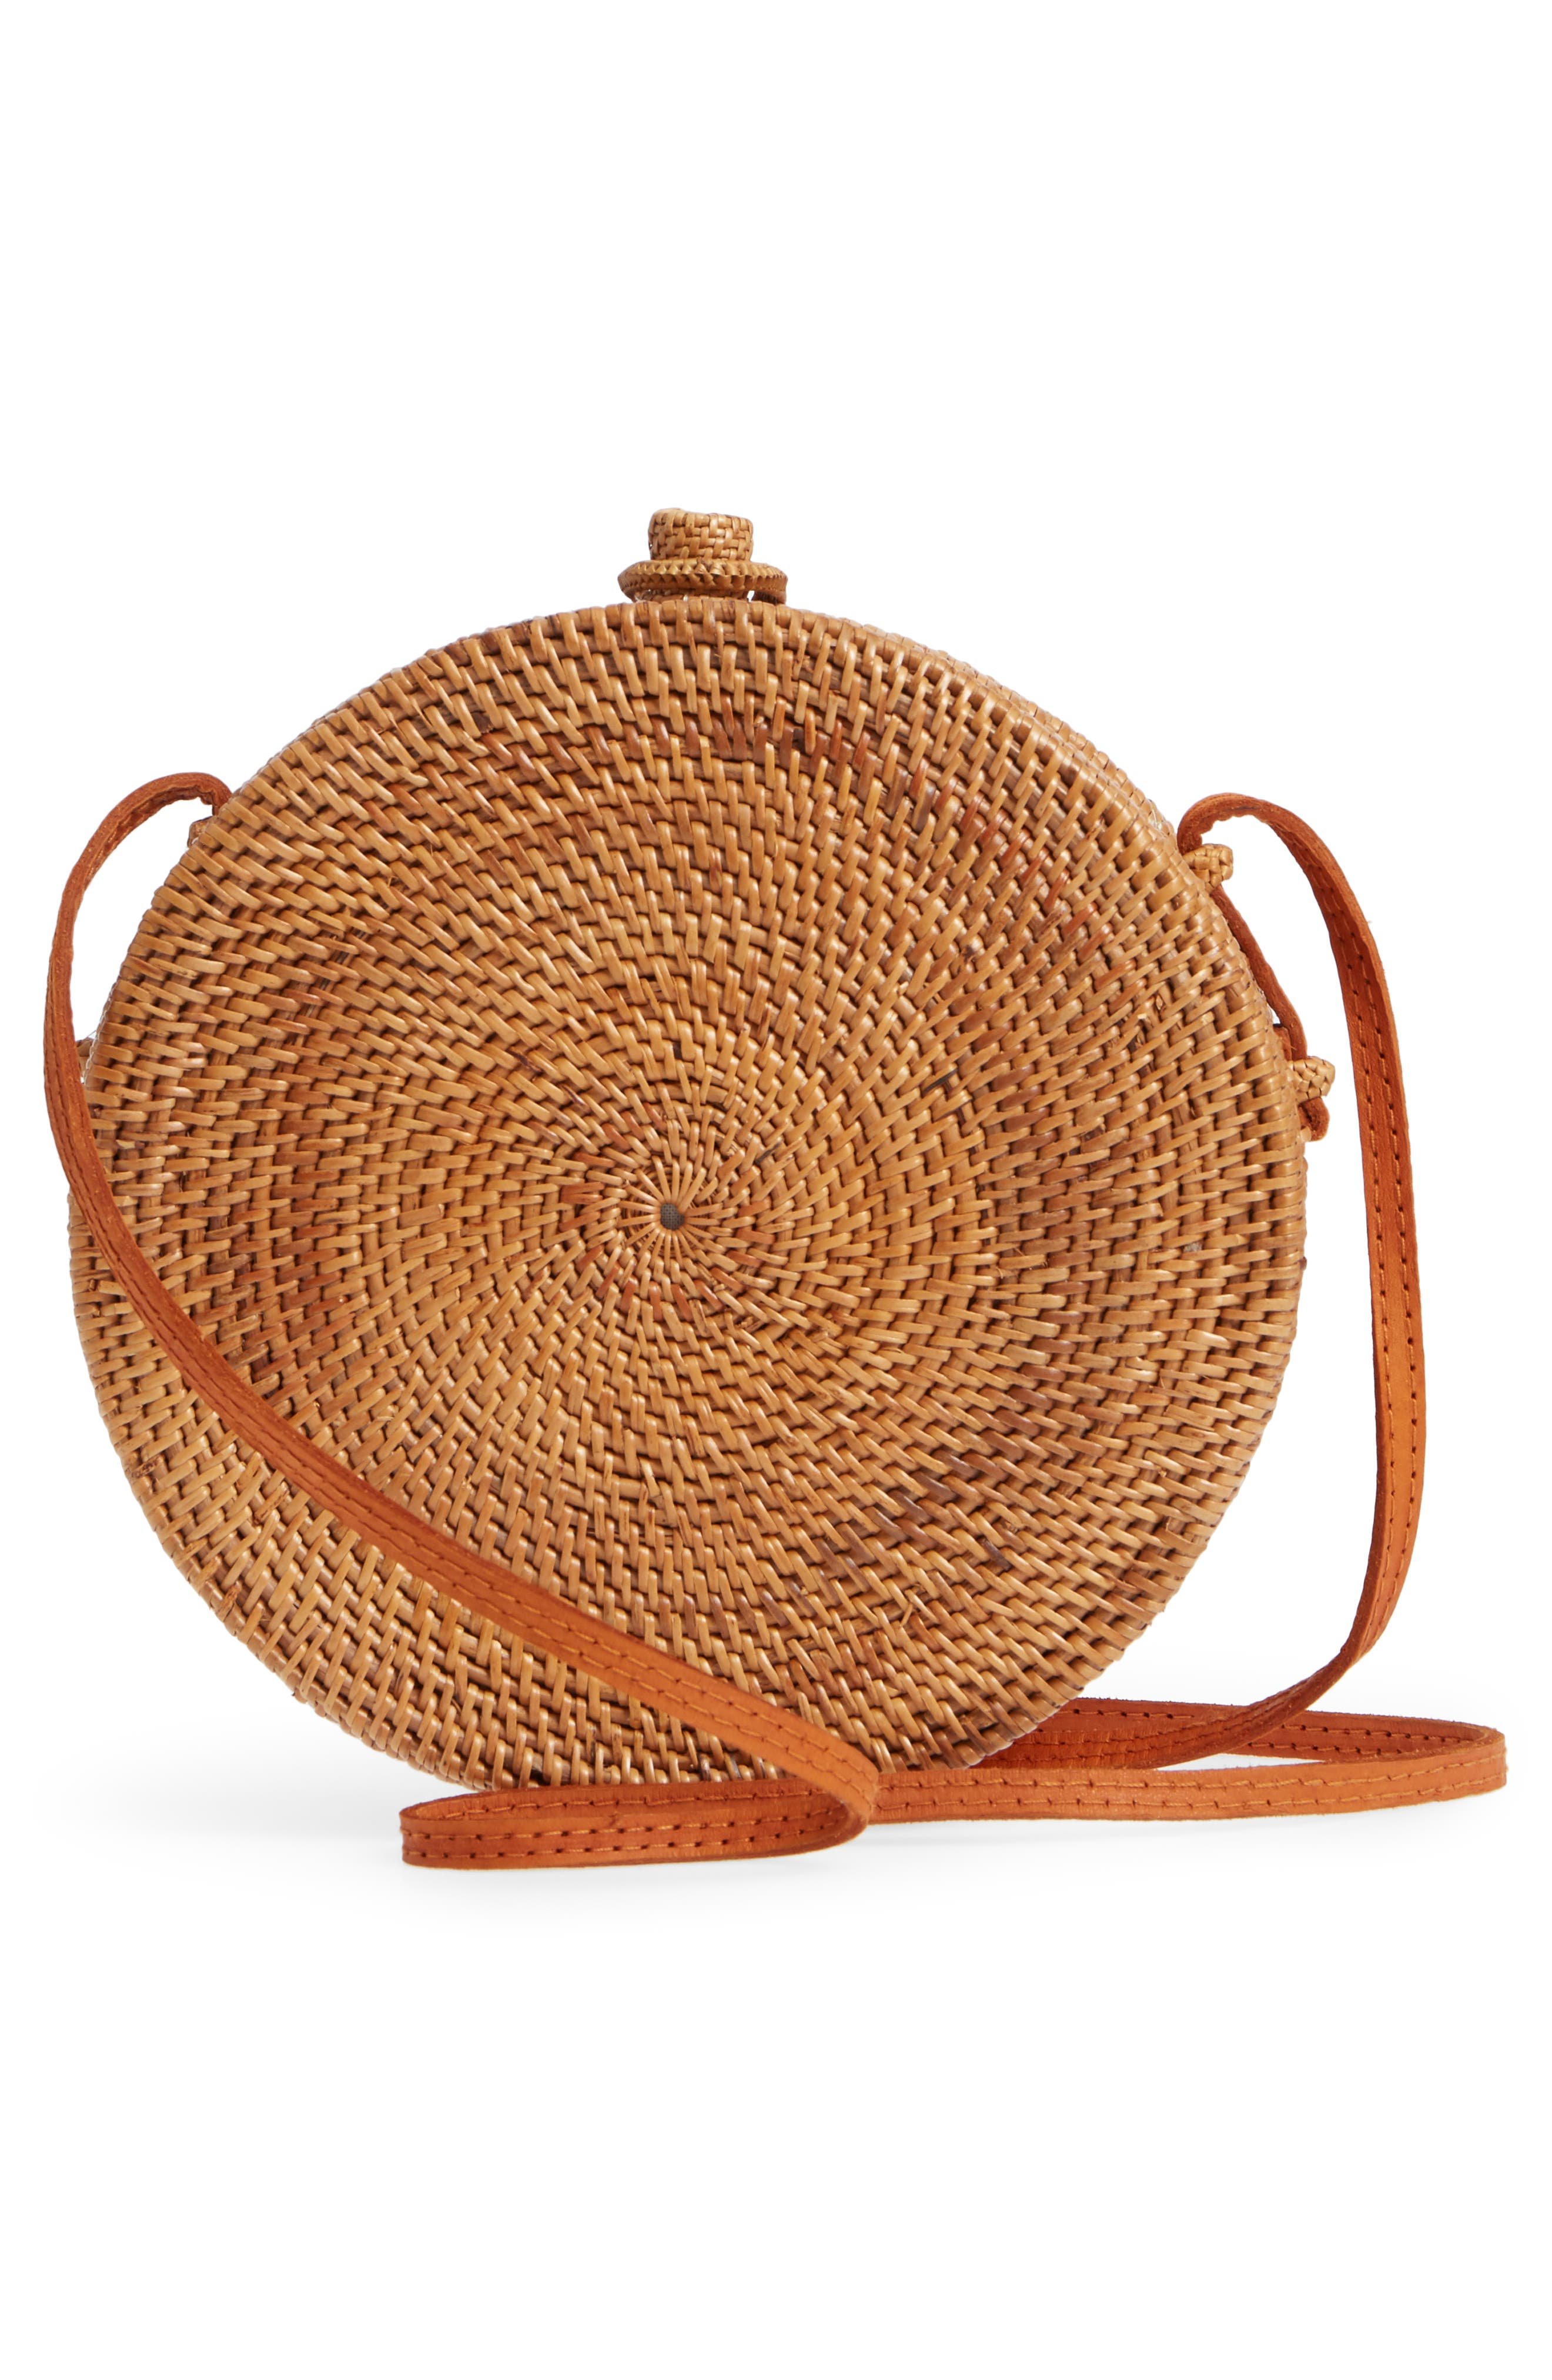 Round Rattan Crossbody Bag,                             Alternate thumbnail 3, color,                             230